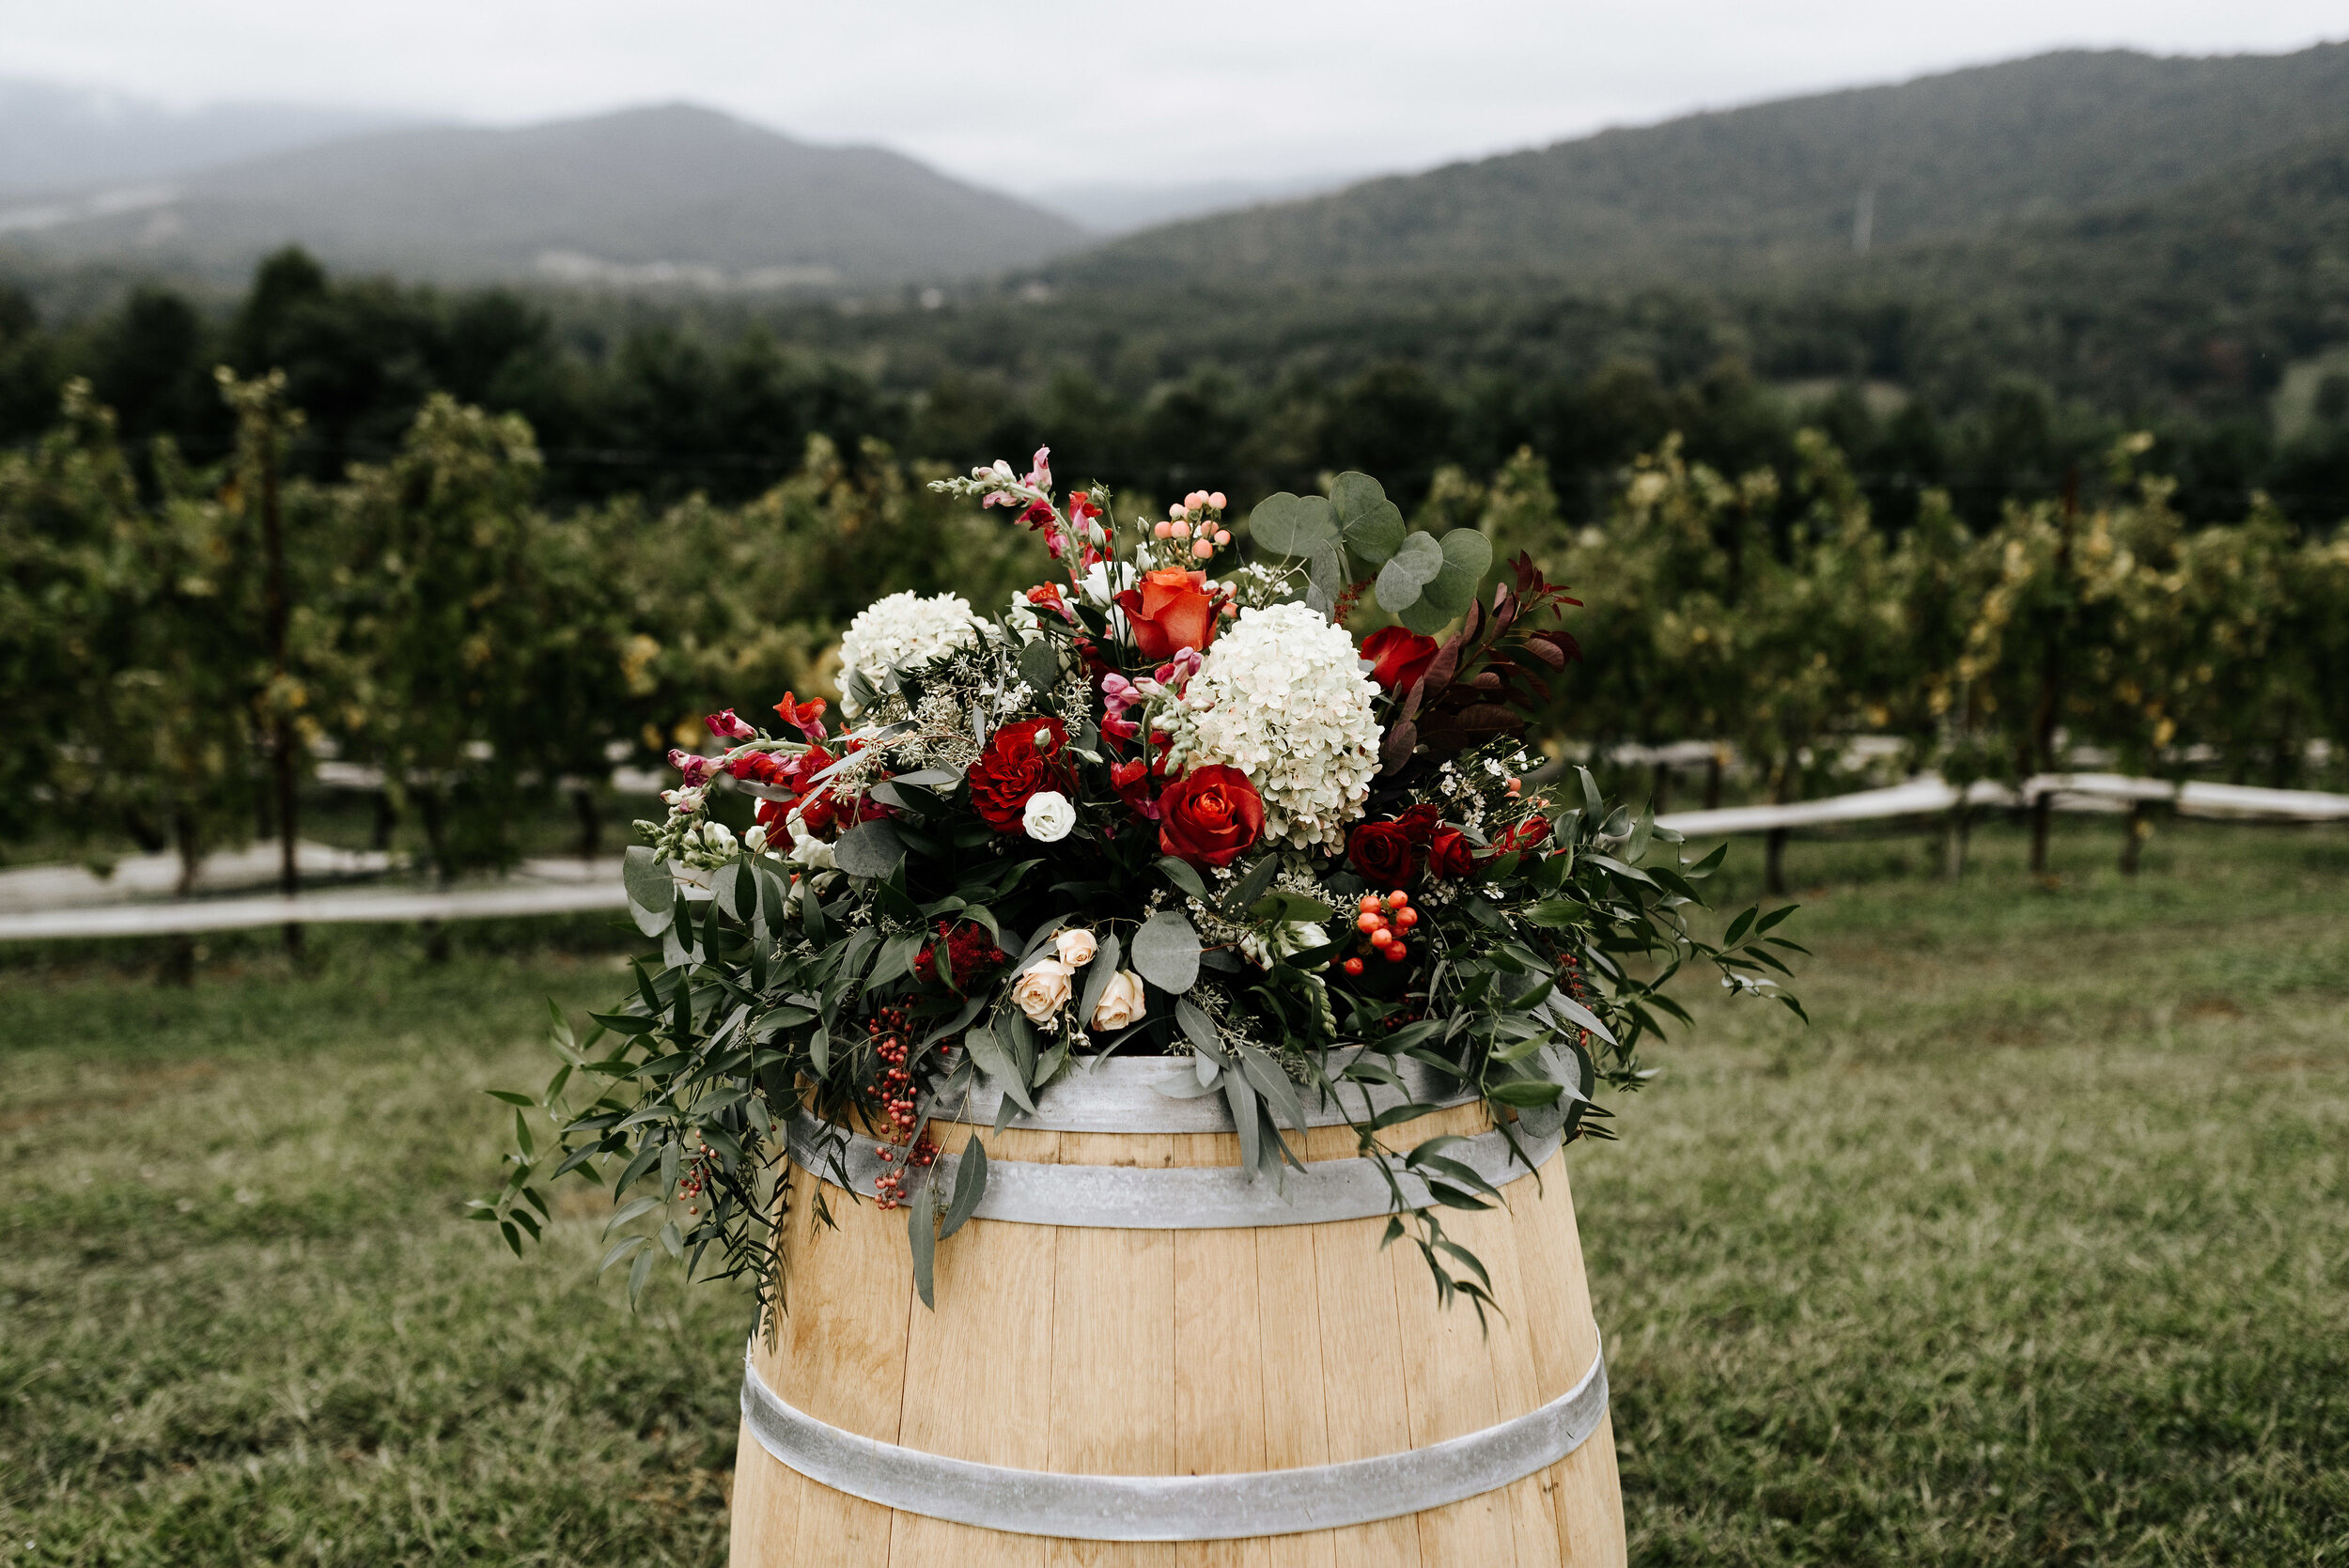 Allison_Nolan_Moss_Vineyards_Wedding_Charlottesville_Virginia_Photography_by_V_38.jpg